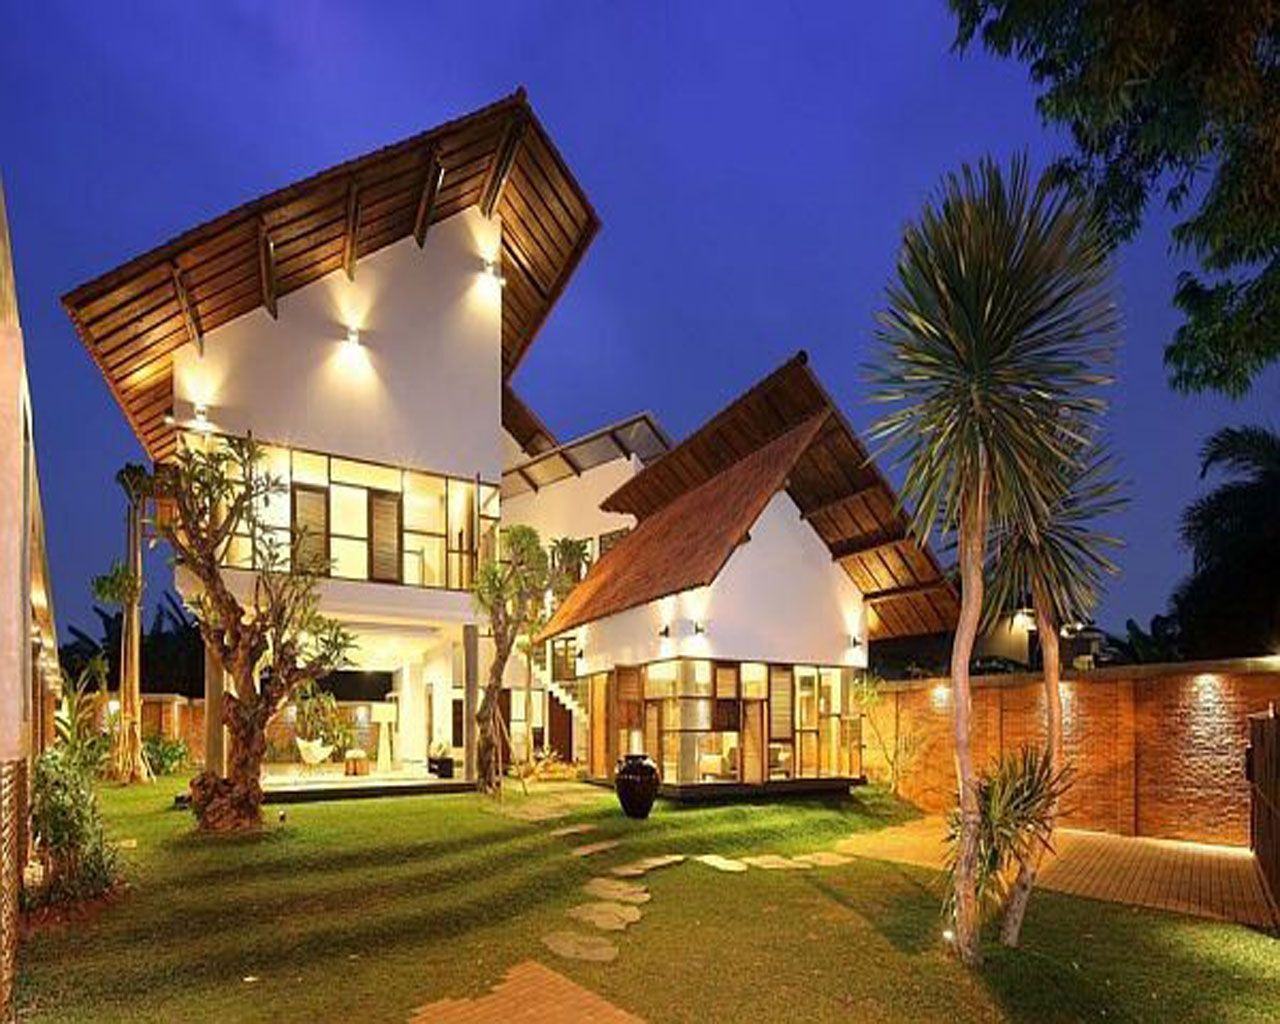 Modern tropical house design ideas